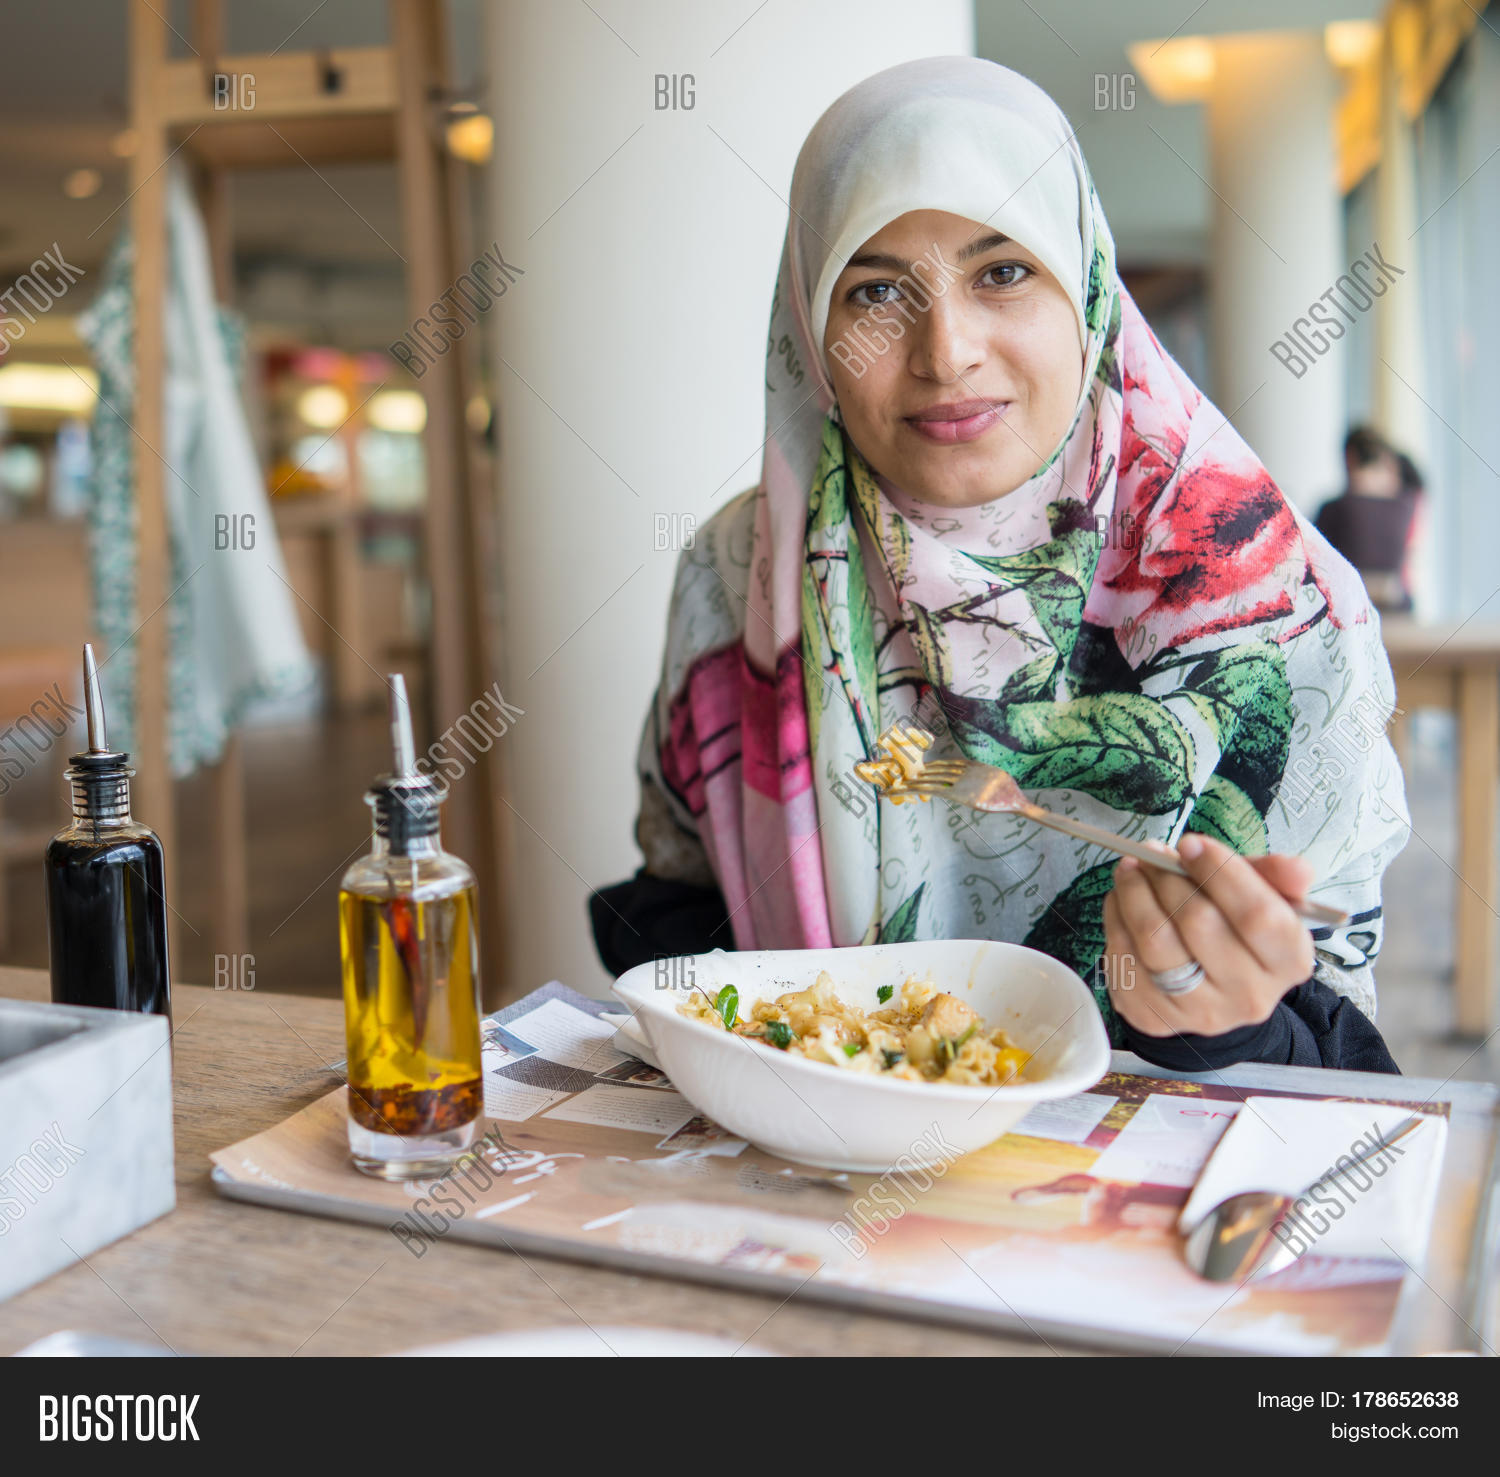 rest muslim girl personals Start meeting singles in travelers rest today with our free online personals and free travelers rest chat i'm not the girl for travelers rest muslim.